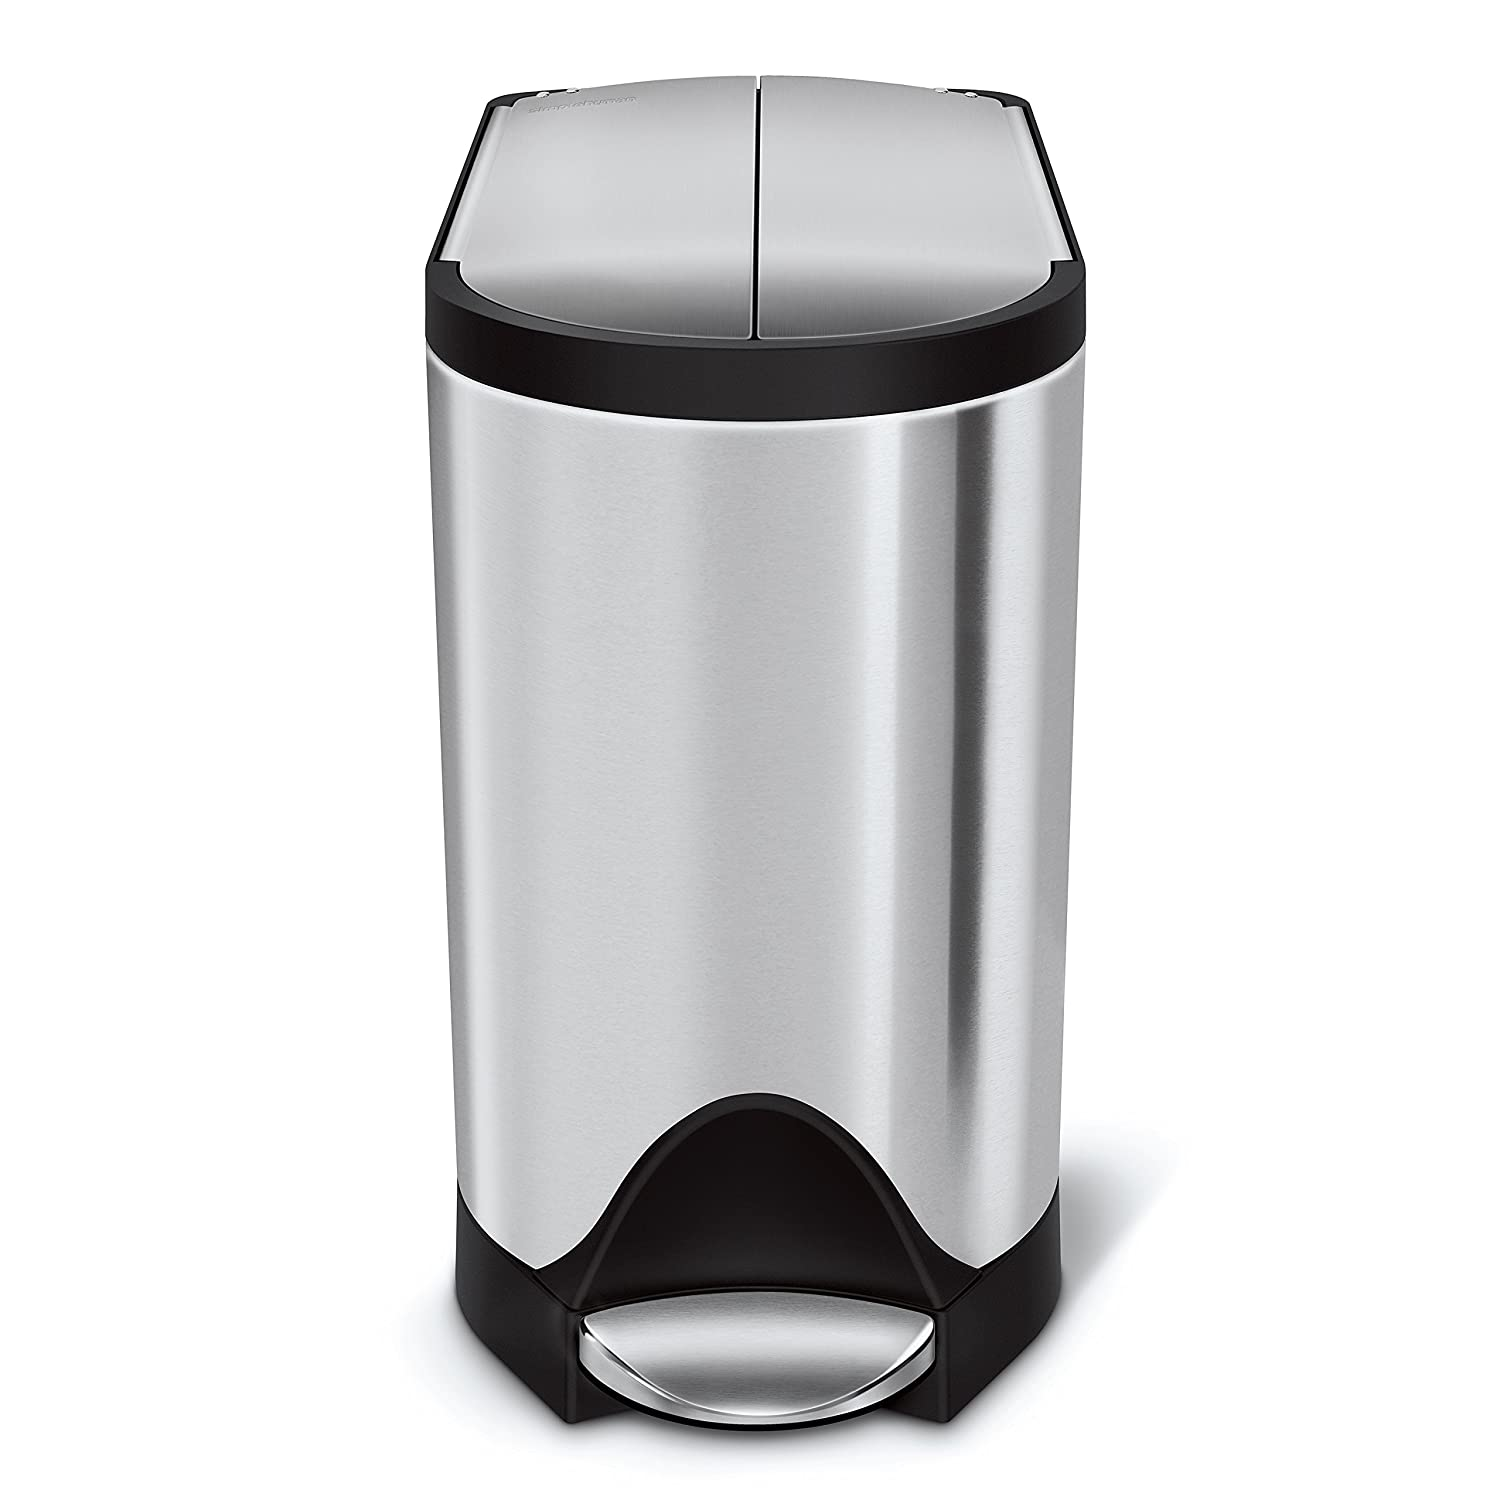 size with home small astonishing voguish trash can of in bathroom stylish cans full designs lid intended for garbage and simplehuman